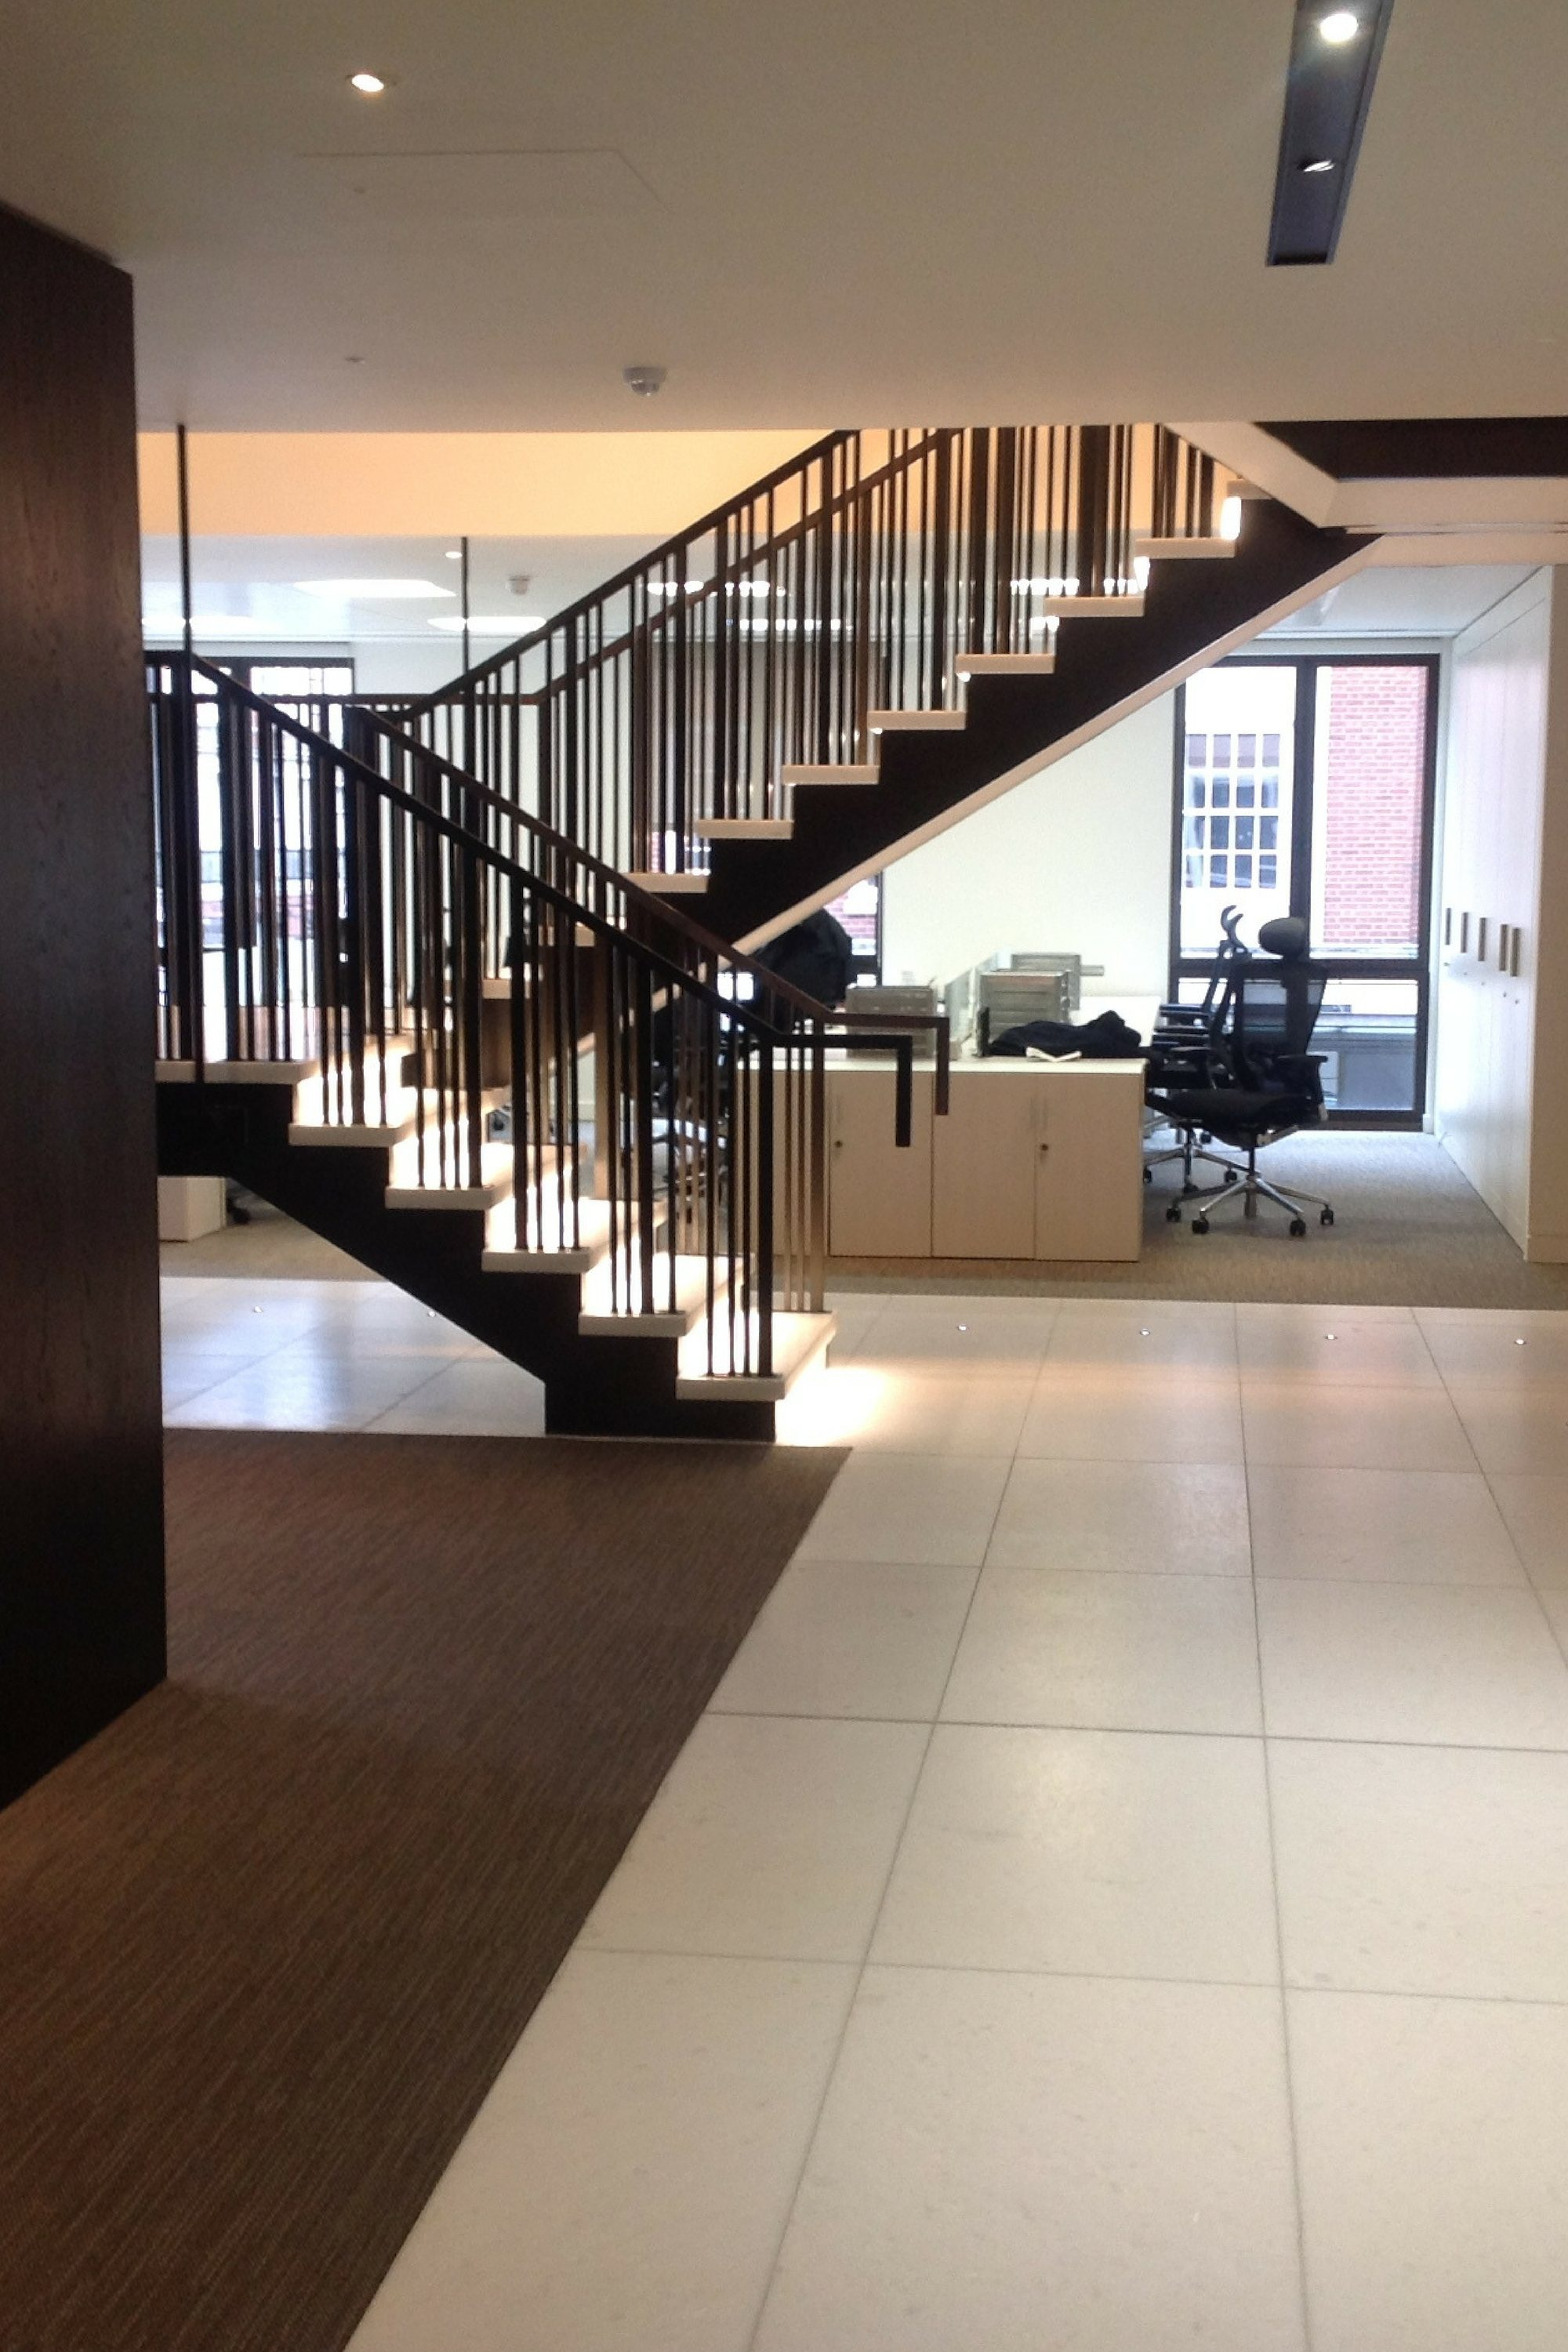 Straight stair with striking balustrade